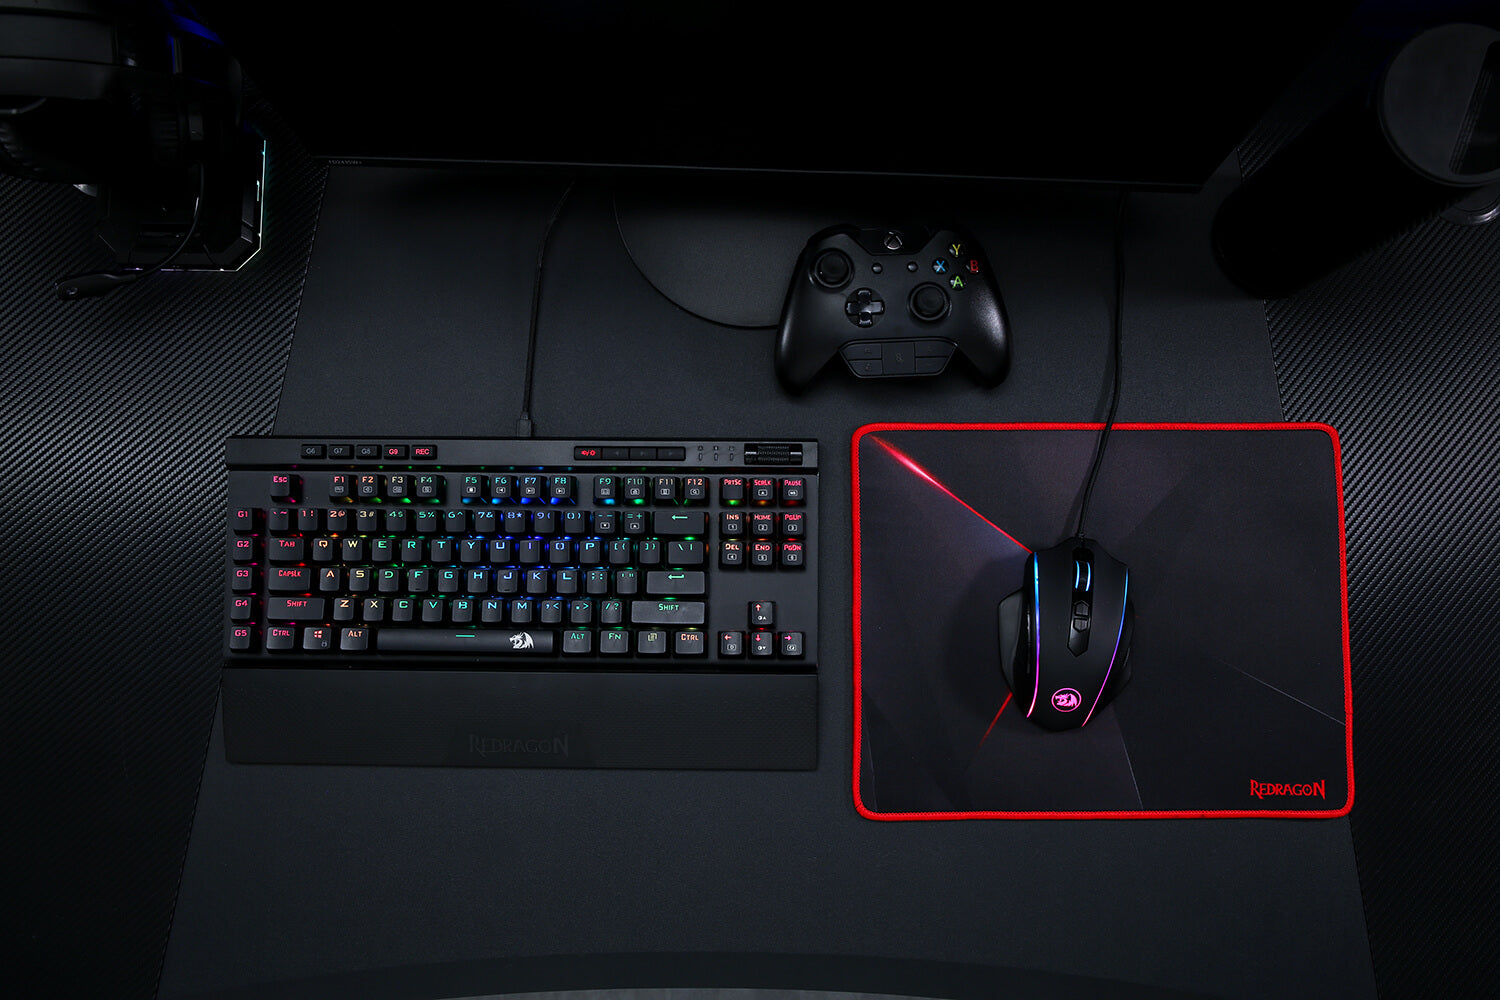 small gaming mouse pad